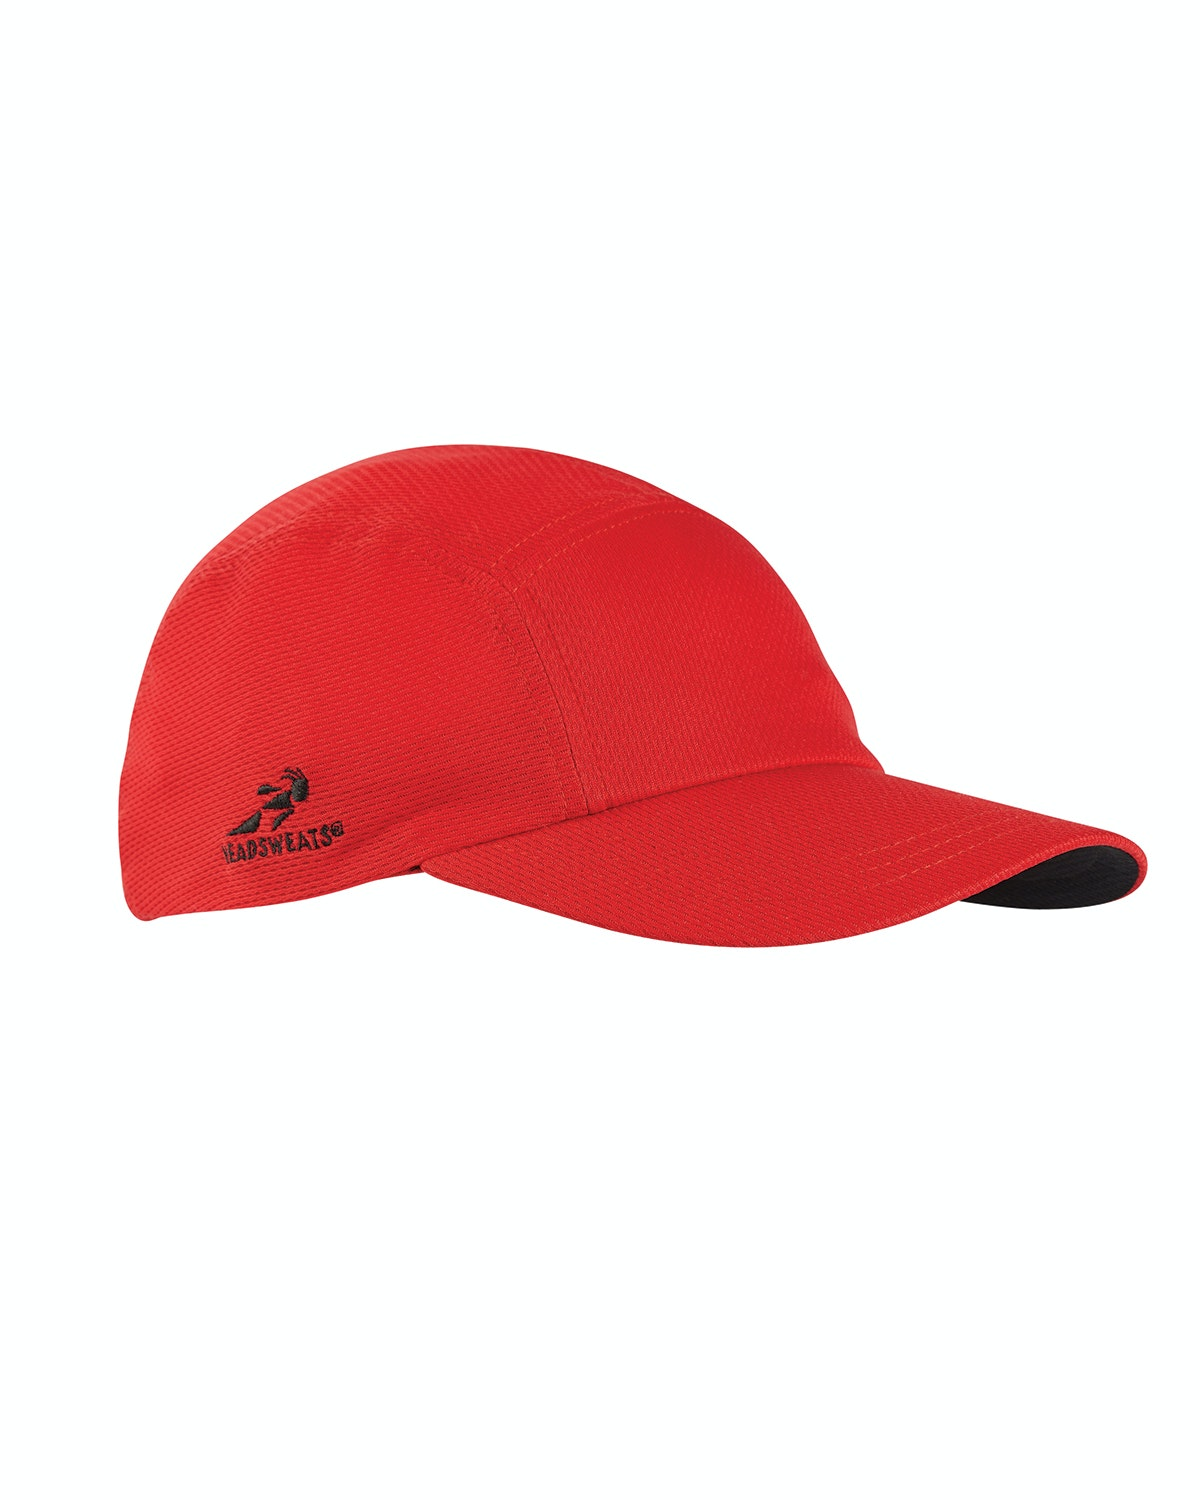 Headsweats HDSW01 Sport Red